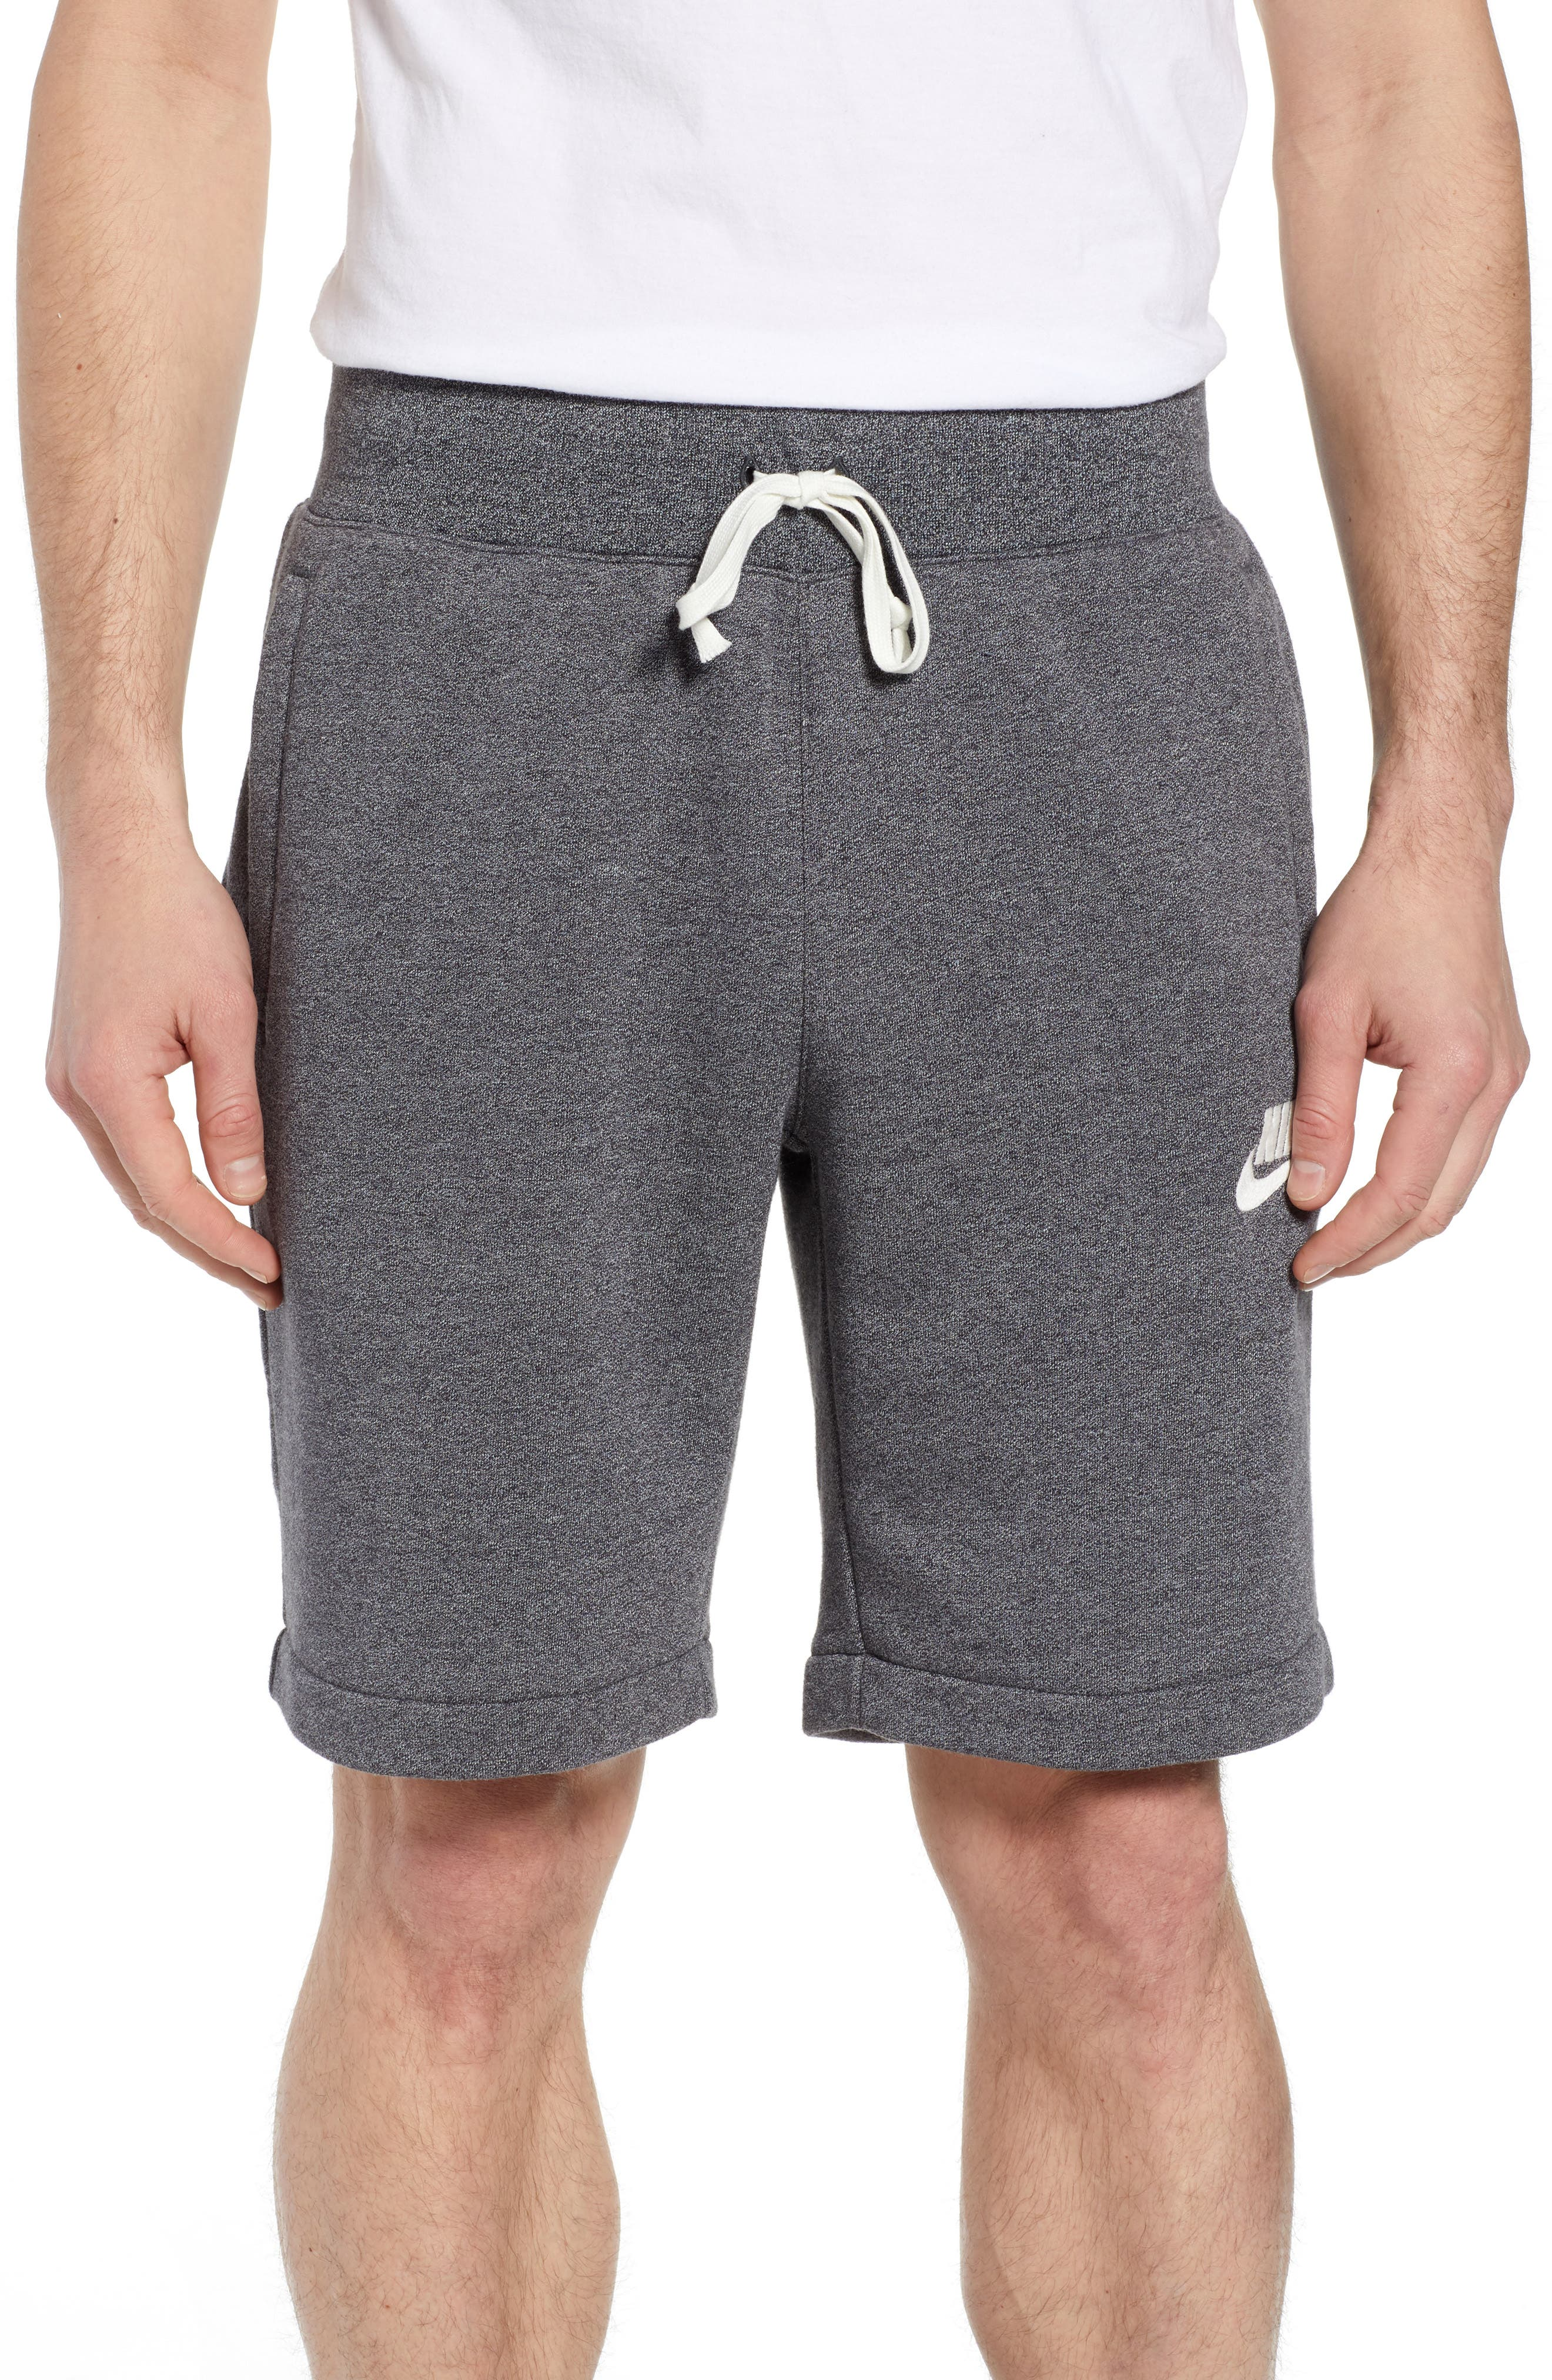 Heritage Knit Shorts,                         Main,                         color, BLACK/ HEATHER/ SAIL